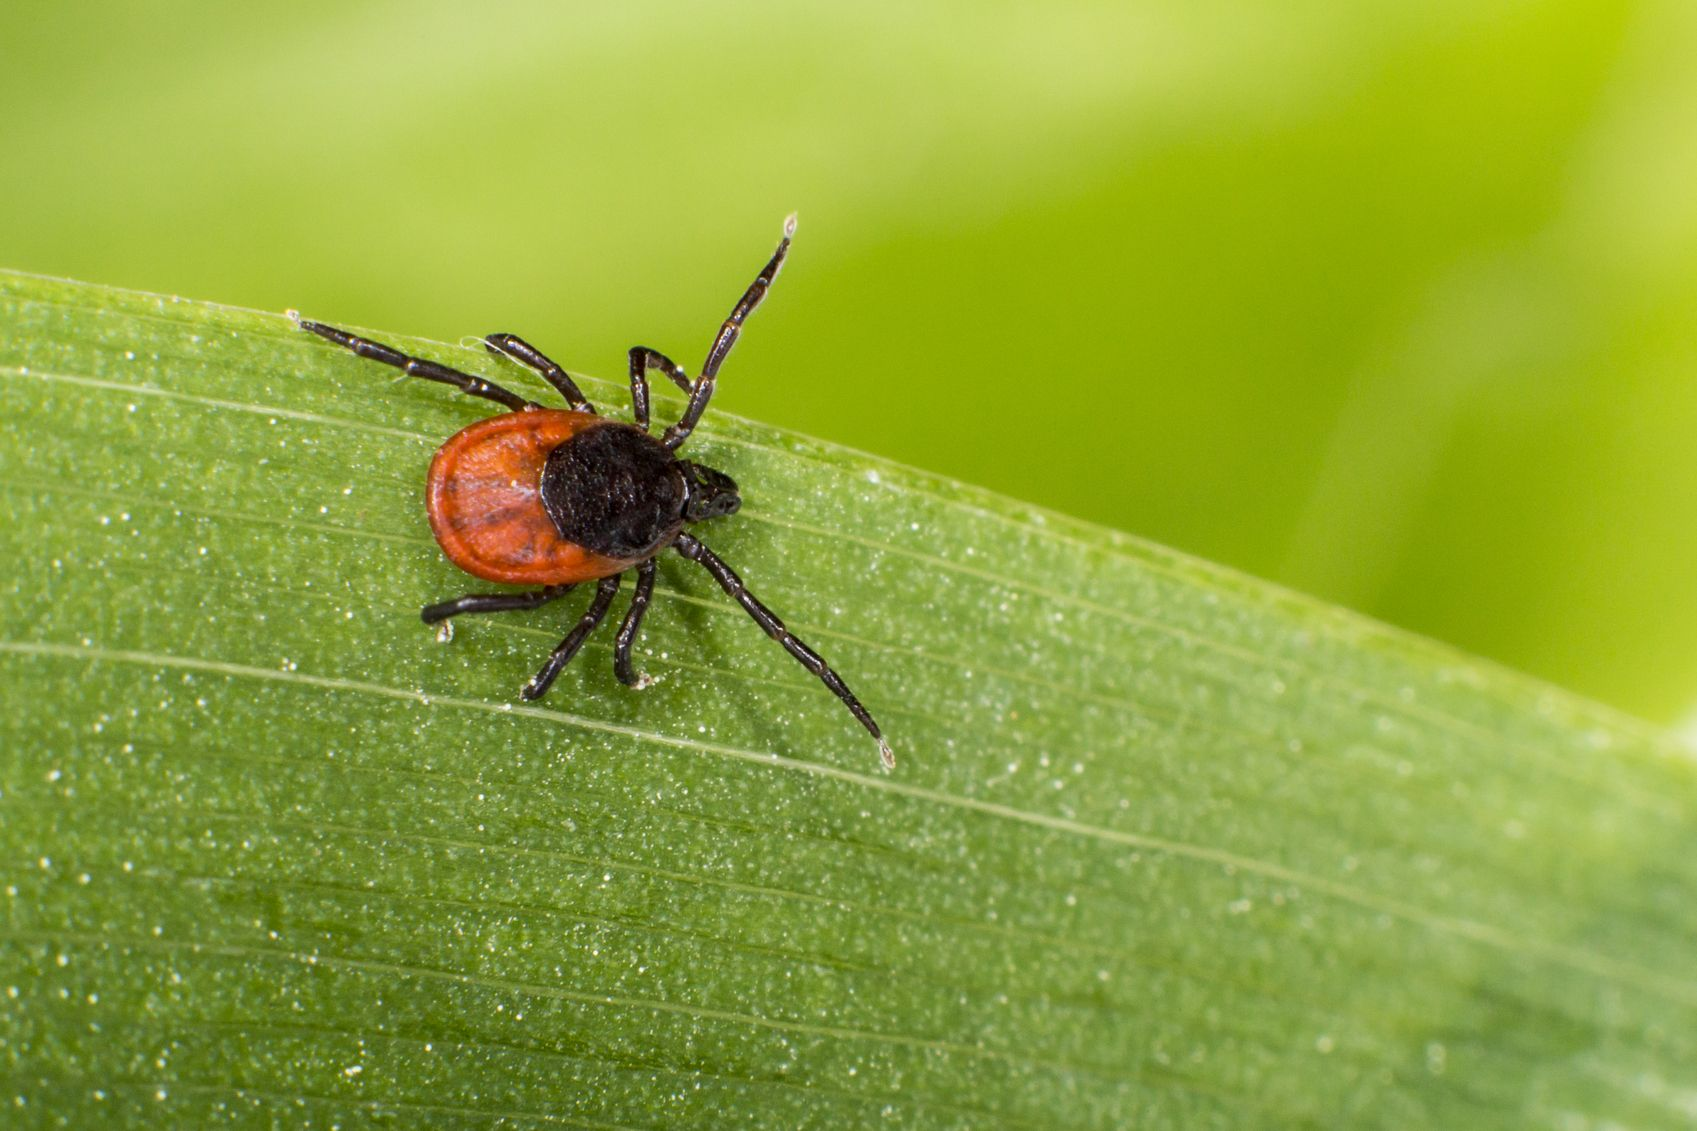 Summertime and the outdoor livin' is easy...except for some pesky little buggers. Get pro tips on tick prevention and removal from a doctor.